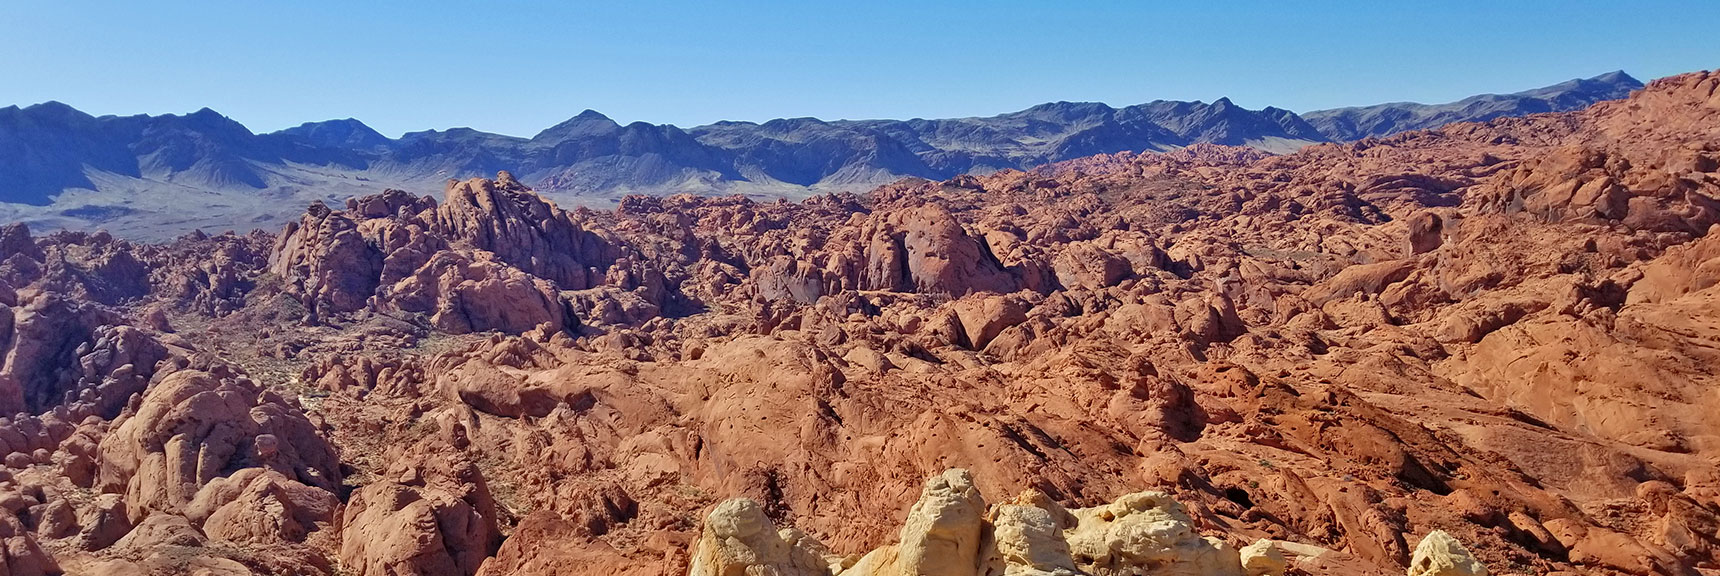 View to the Northwest from Silica Dome Summit in Valley of Fire State Park, Nevada